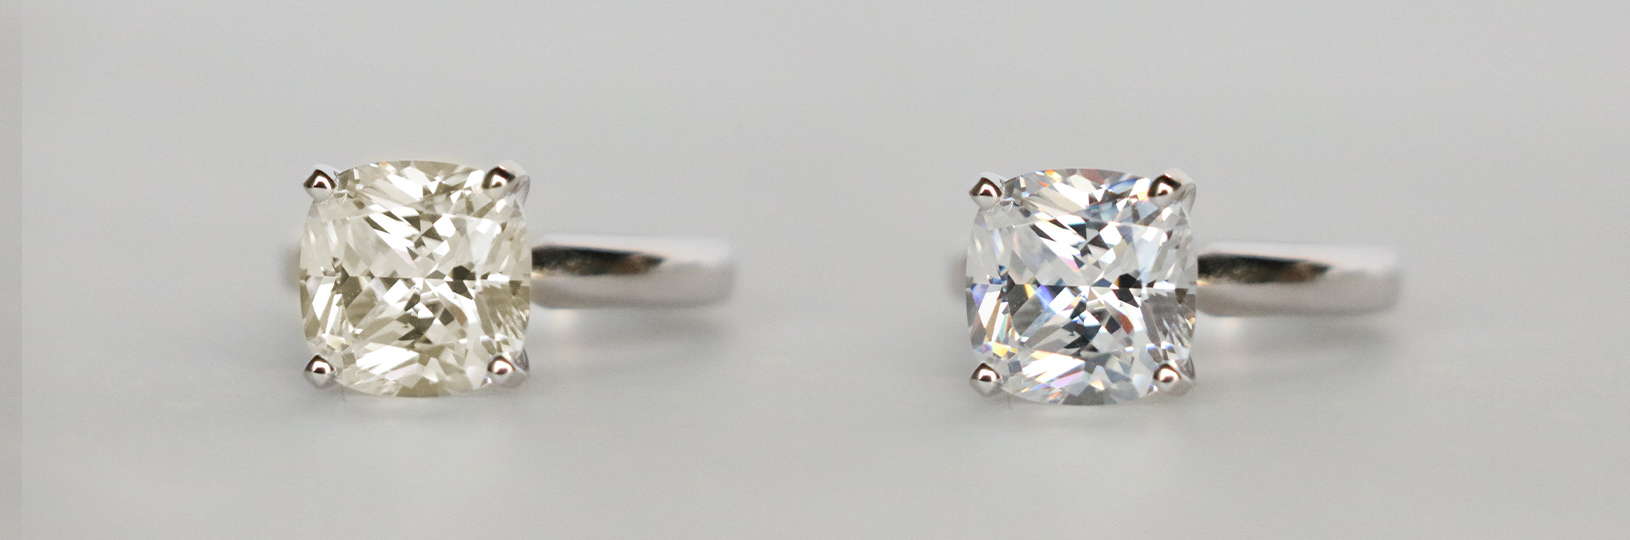 Diamond color compared side by side